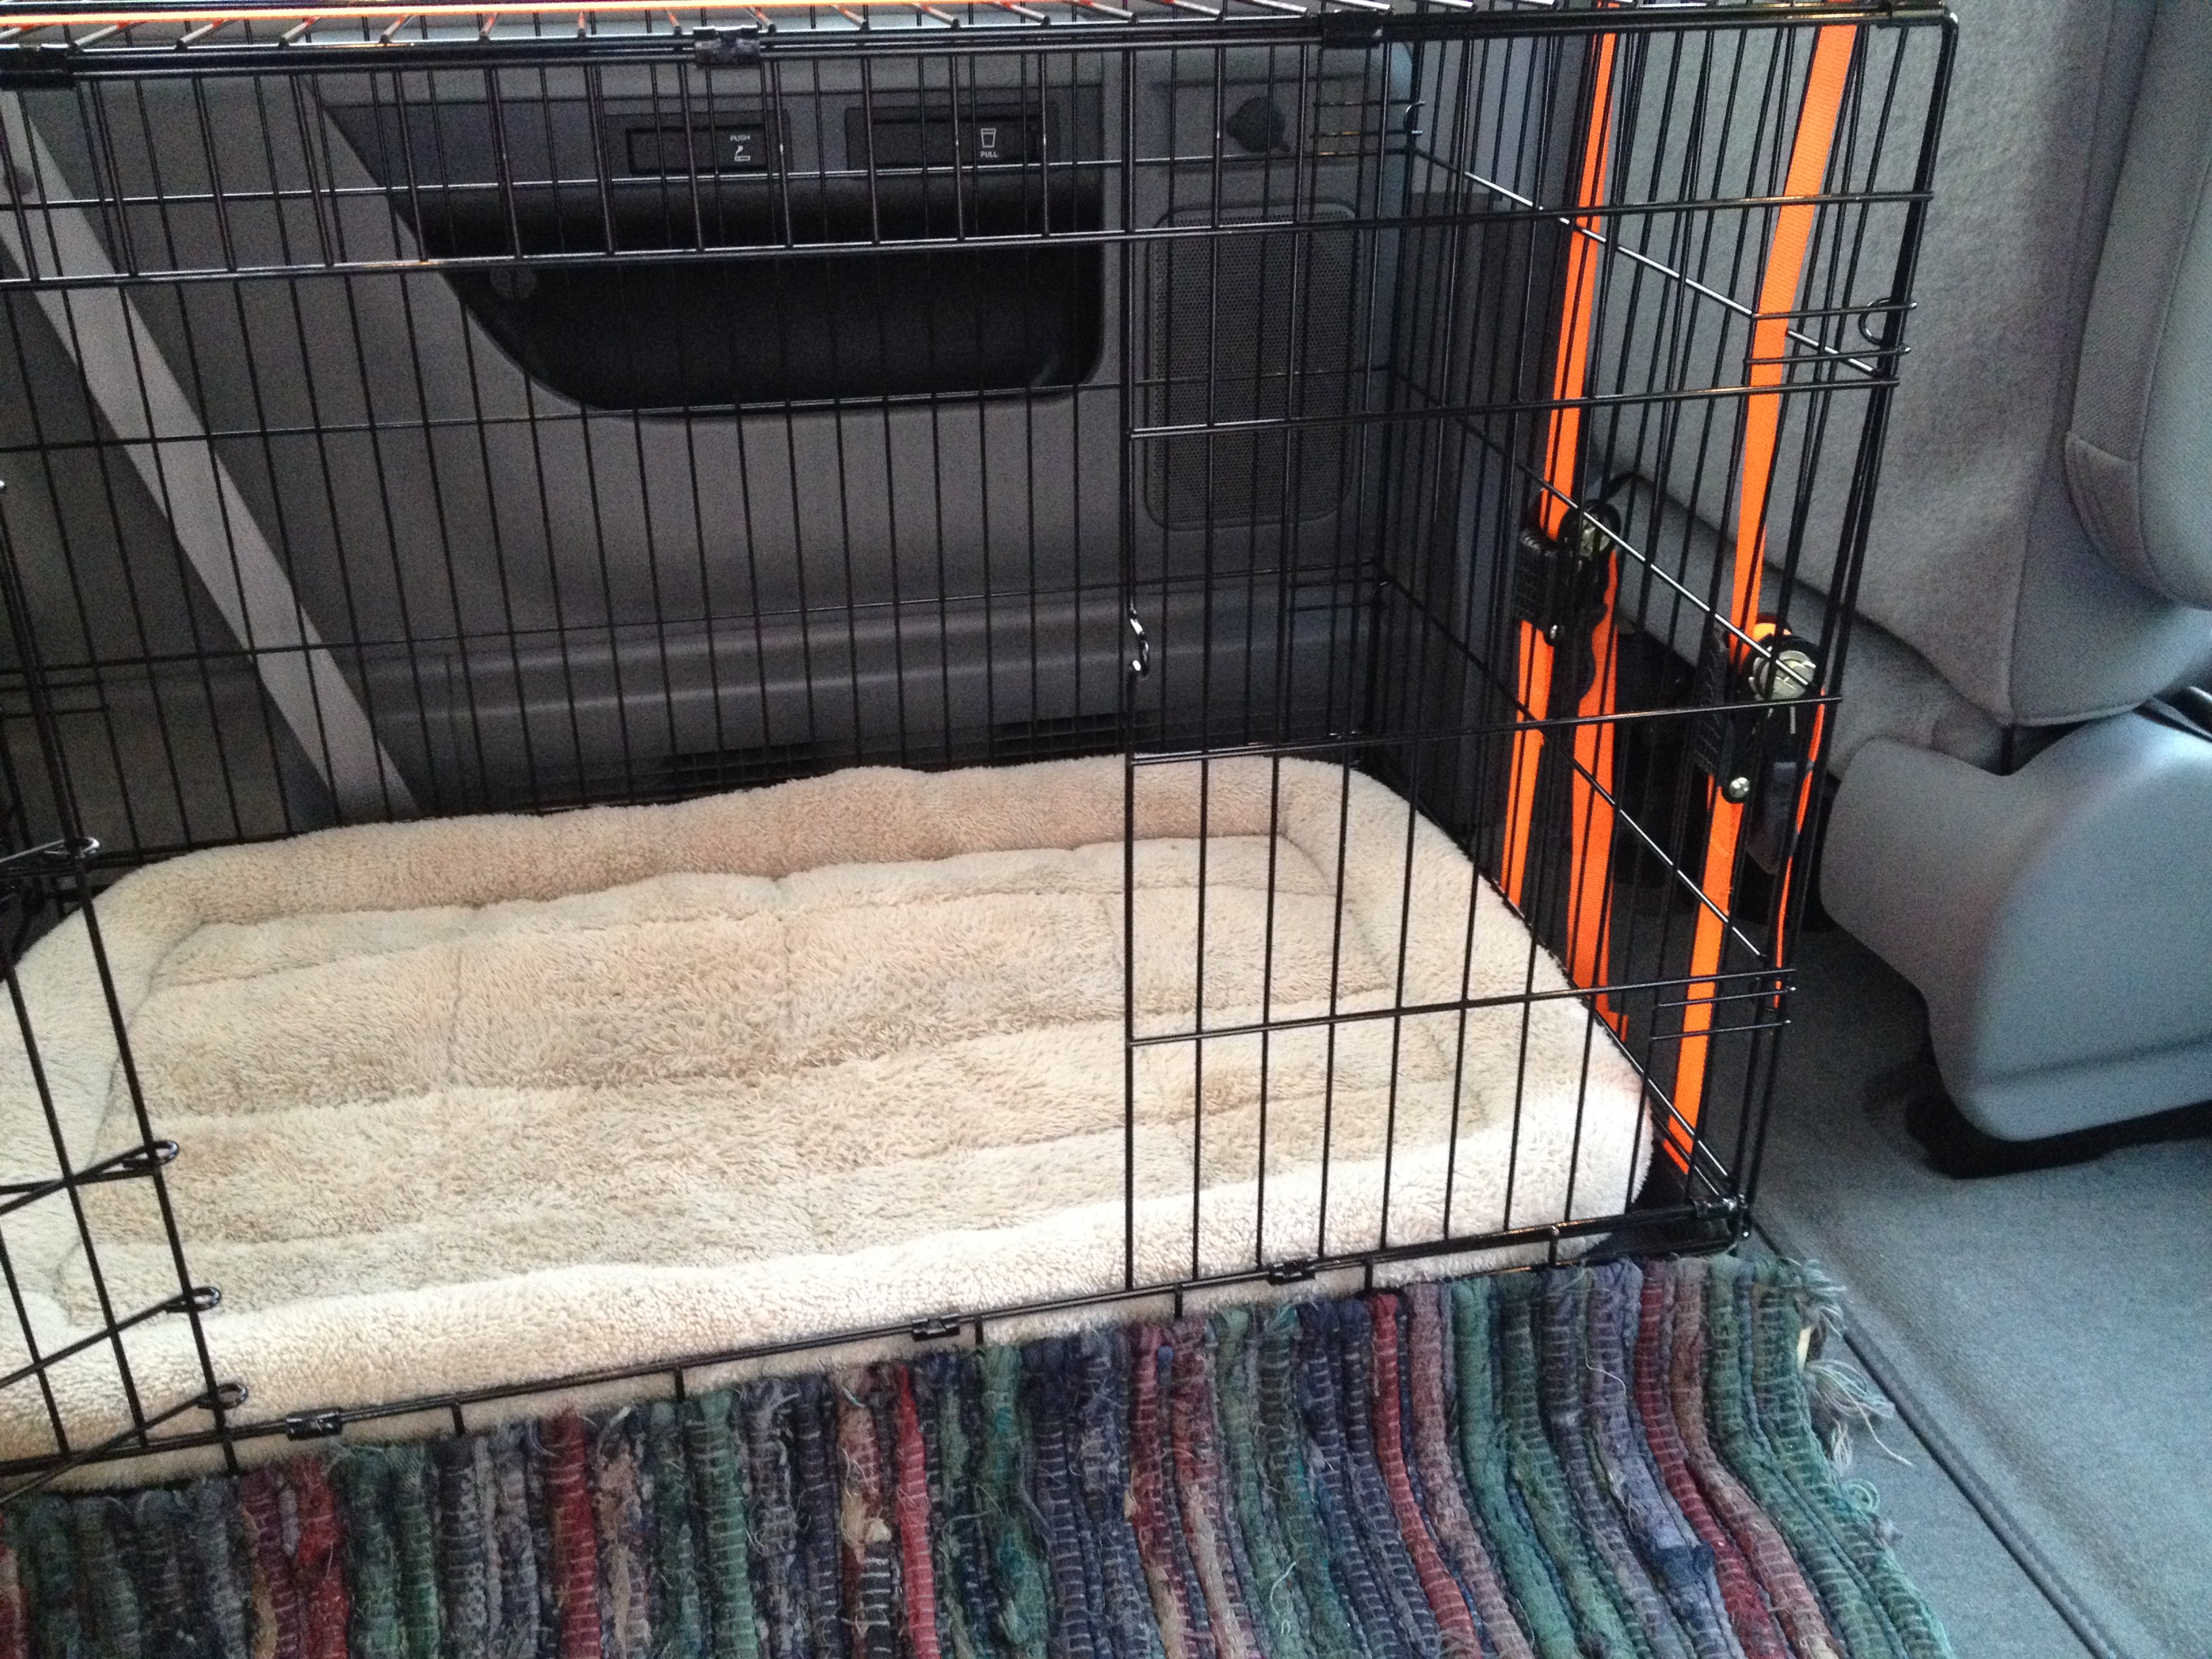 Dog Crate Installation In Van Don S Train Blog